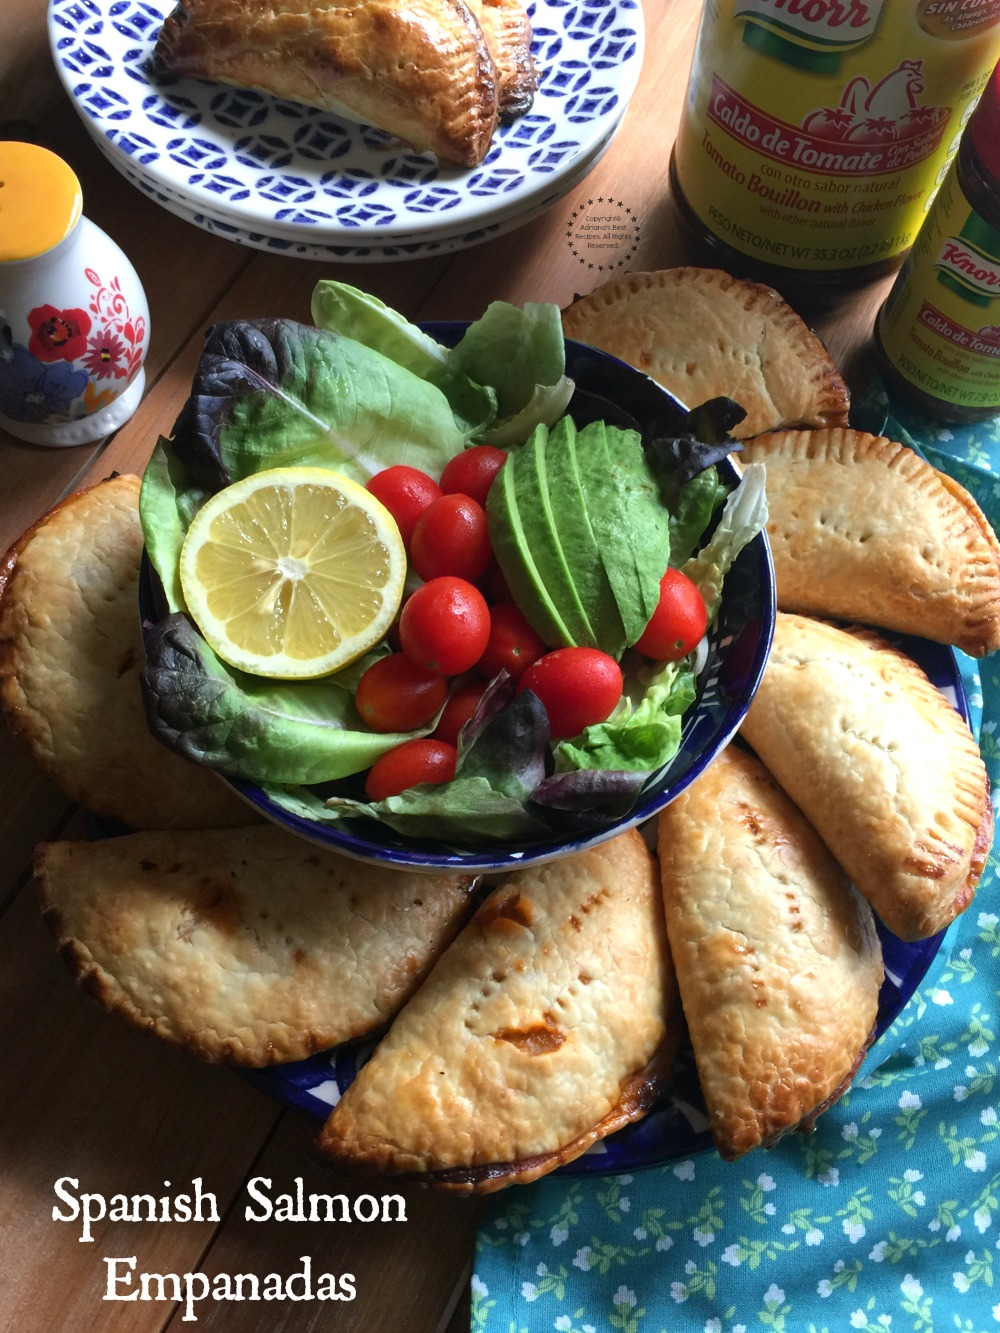 Spanish Salmon Empanadas made with canned salmon, Spanish ingredients and Seasoned with Knorr Tomato Bouillon with Chicken Flavor